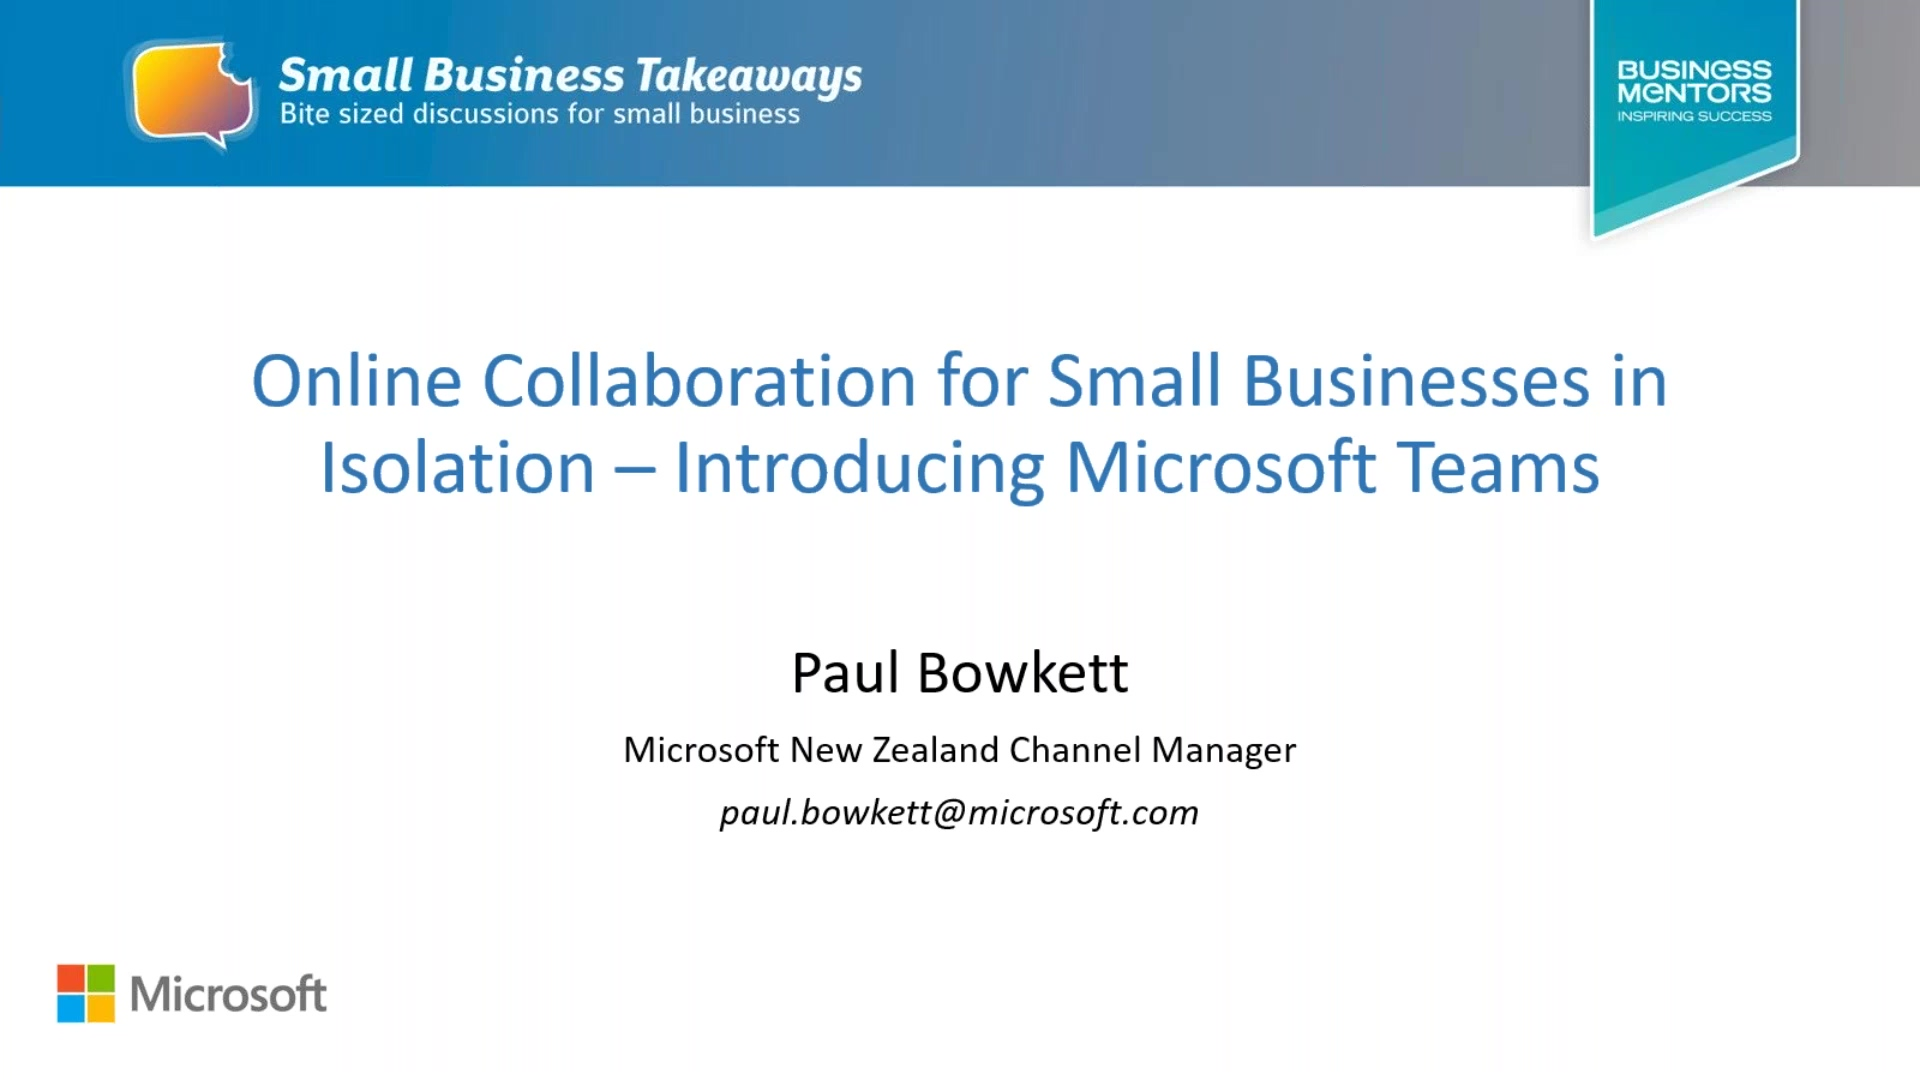 Business Mentors New Zealand_ Online Collaboration for Small Businesses in Isolation - Introducing M